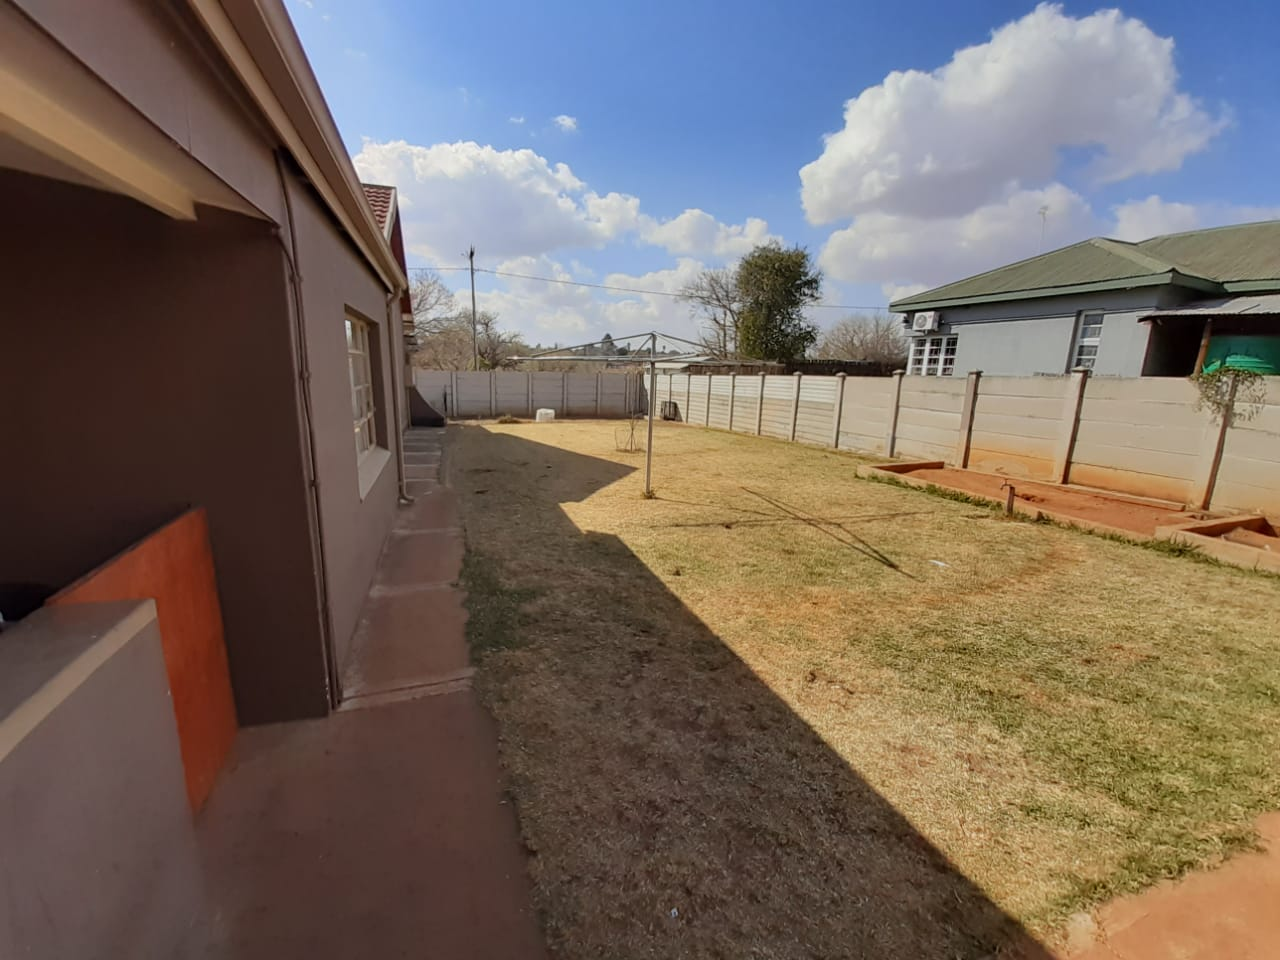 House in Parys - WhatsApp Image 2021-07-15 at 14.03.52 (1).jpeg